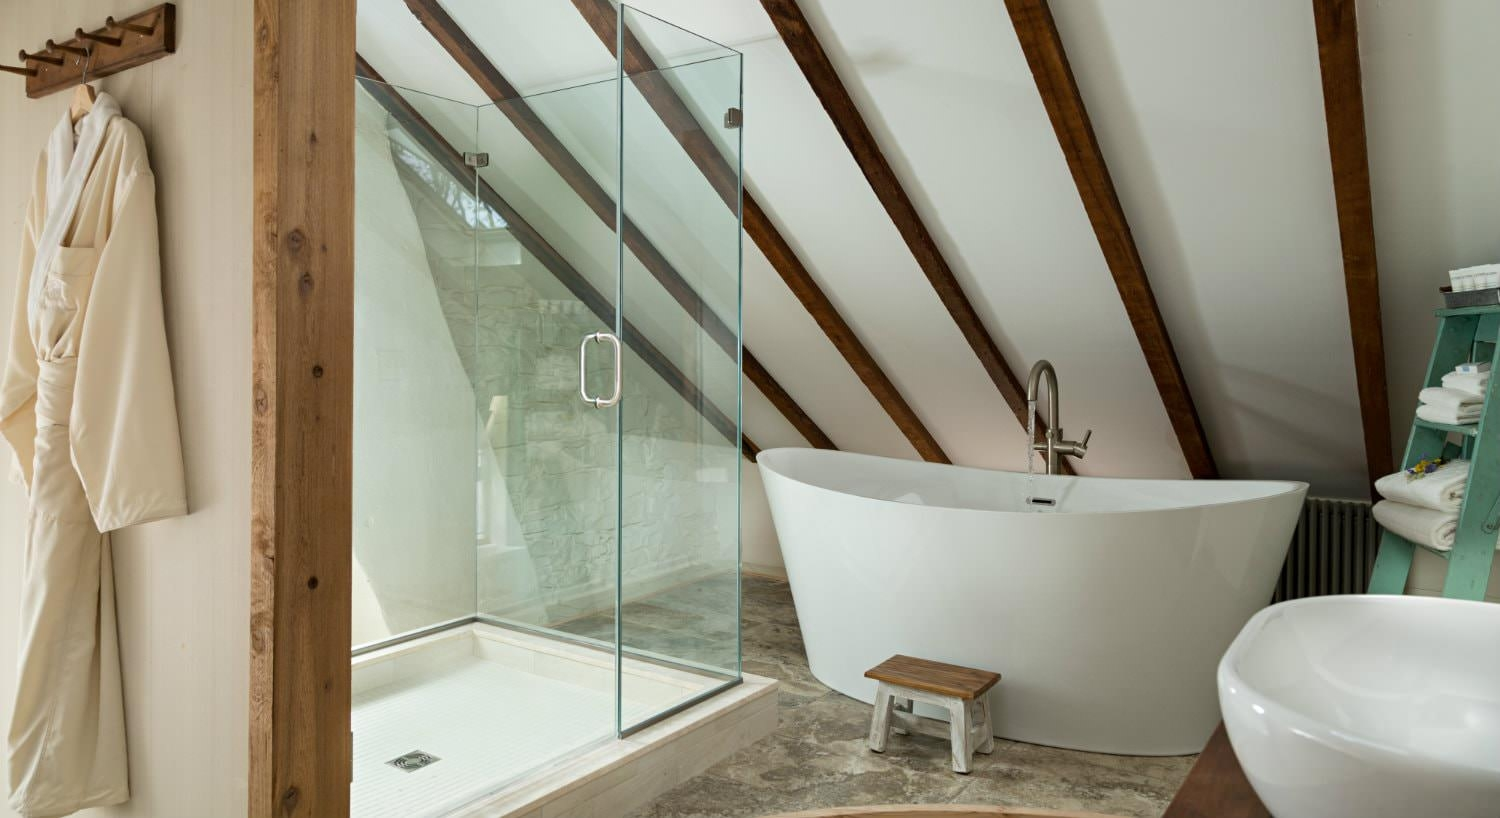 Vaulted white bathroom with walk-in shower with glass doors and modern freestanding tub